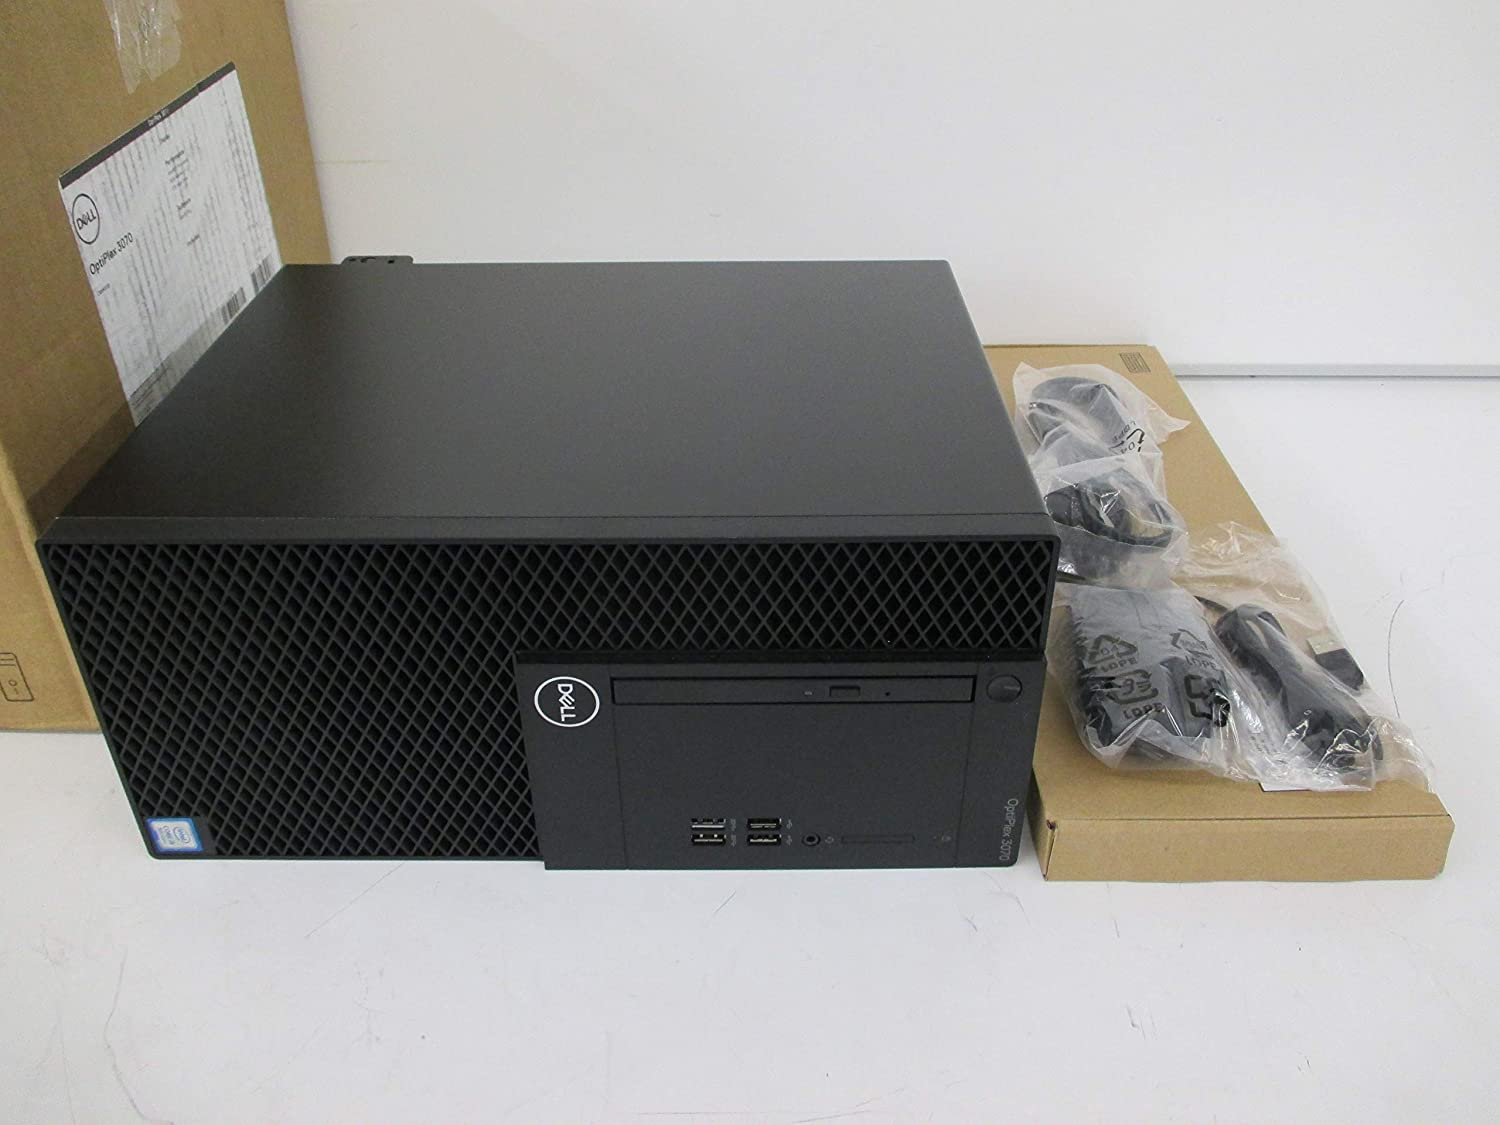 Dell OptiPlex 3070 Desktop Computer - Intel Core i5-9500 - 8GB RAM - 1TB HDD - Tower